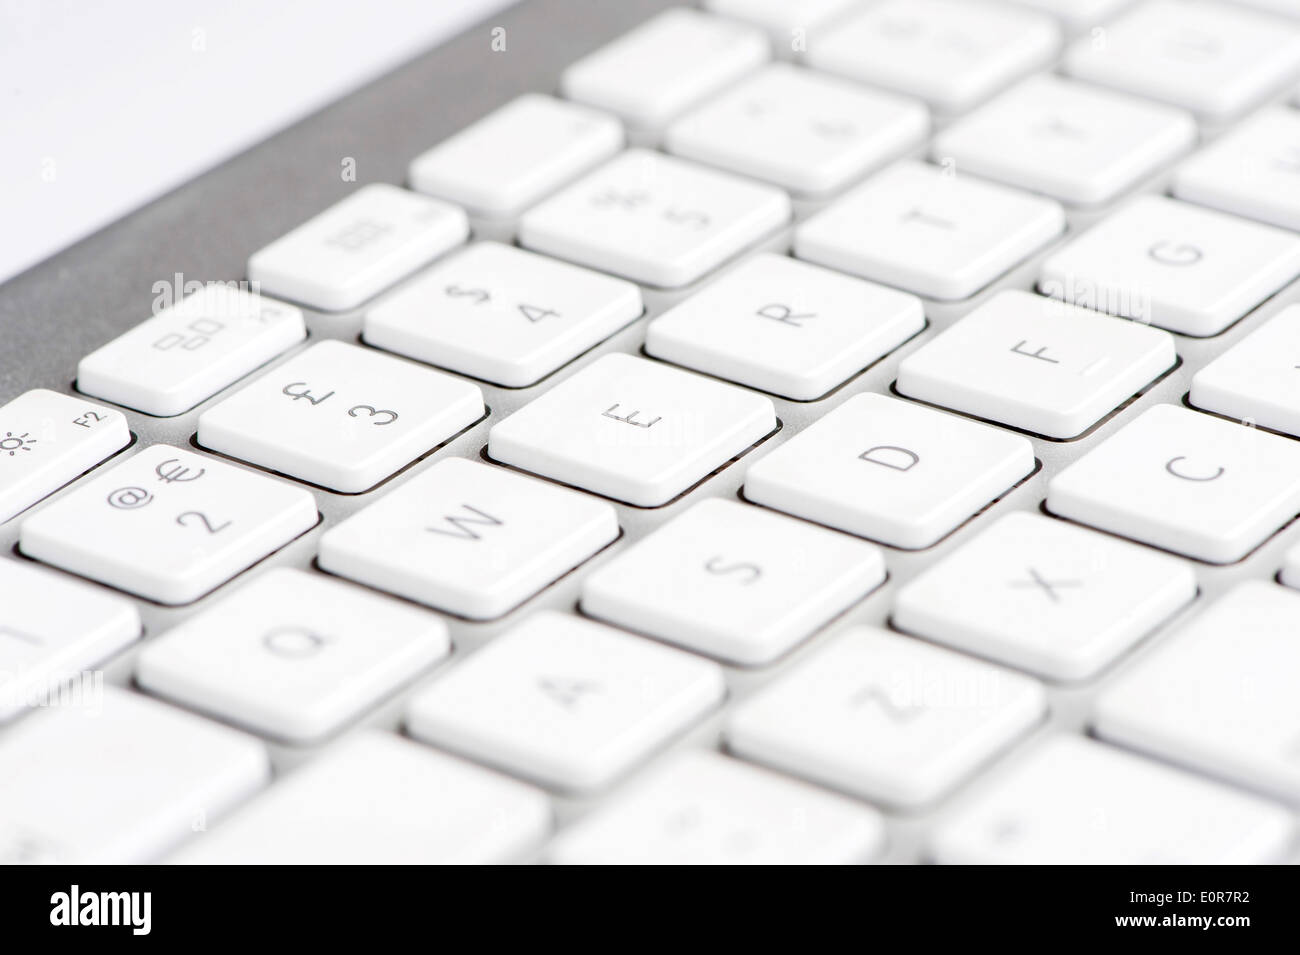 Apple mac white Keyboard focused on the letter E - Stock Image